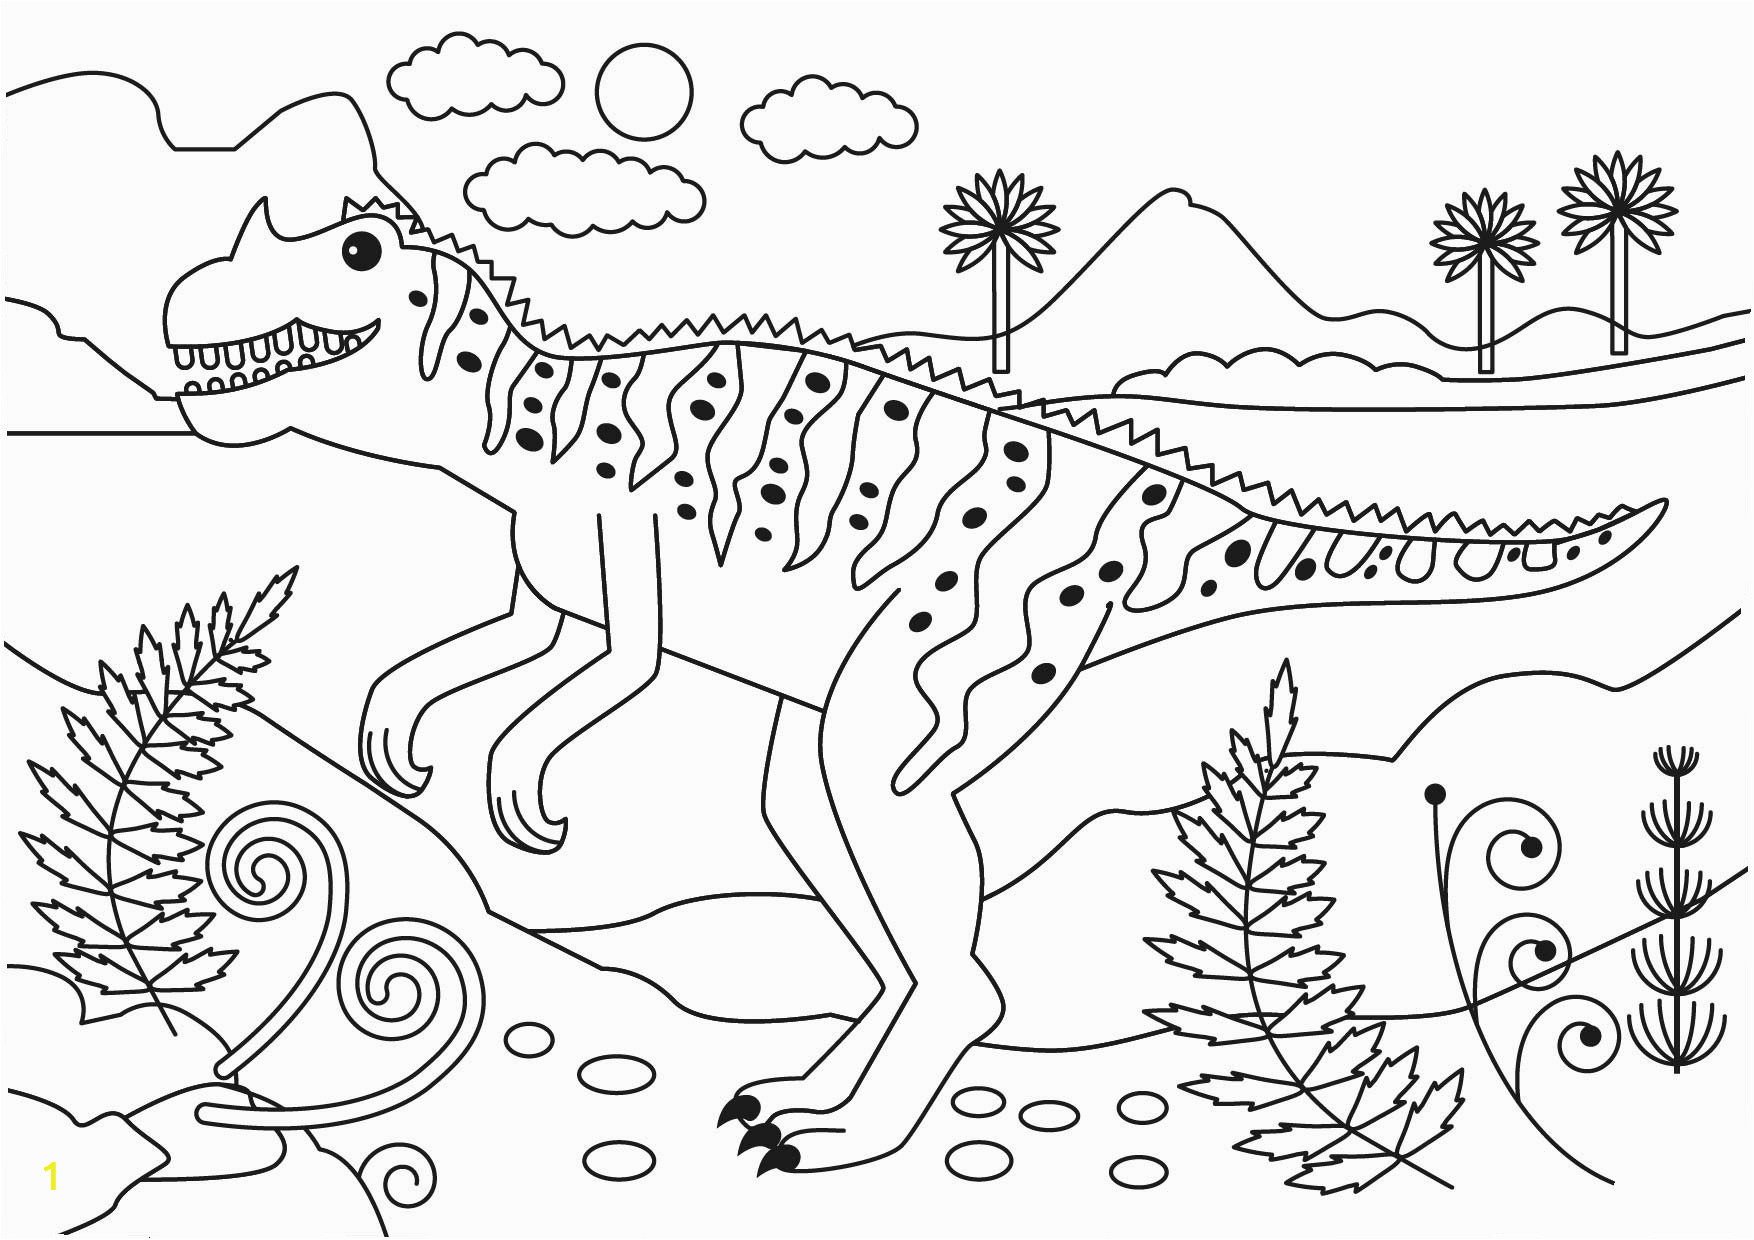 simple dinosaur coloring pages best of coloring page free printable ceratosaurus of simple dinosaur coloring pages